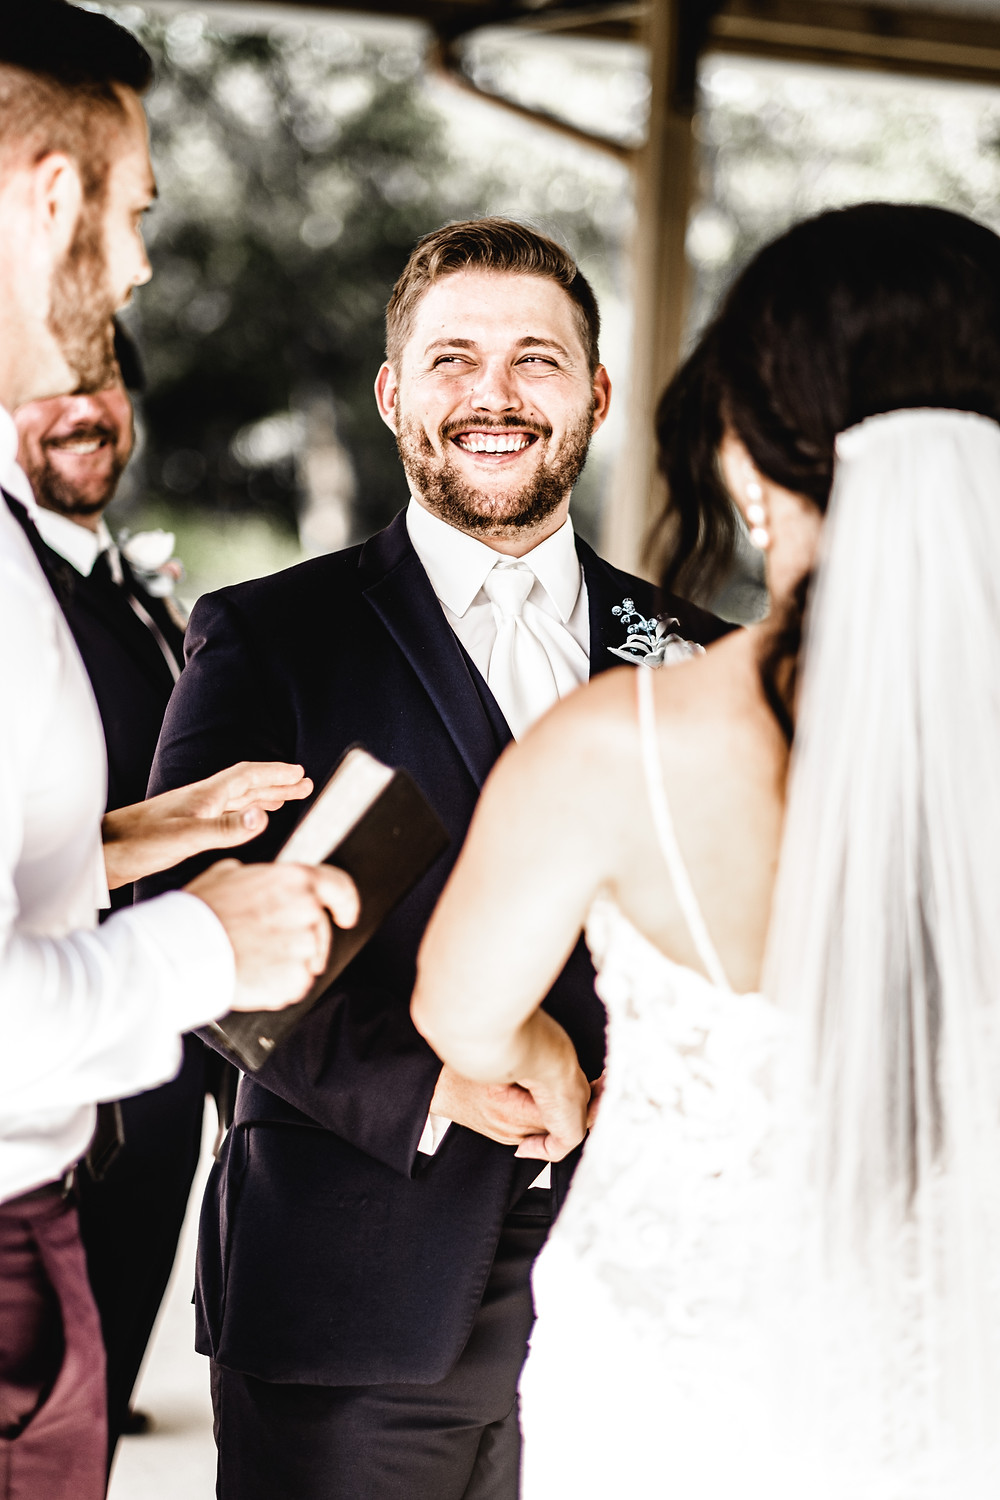 Groom laughing at altar during ceremony